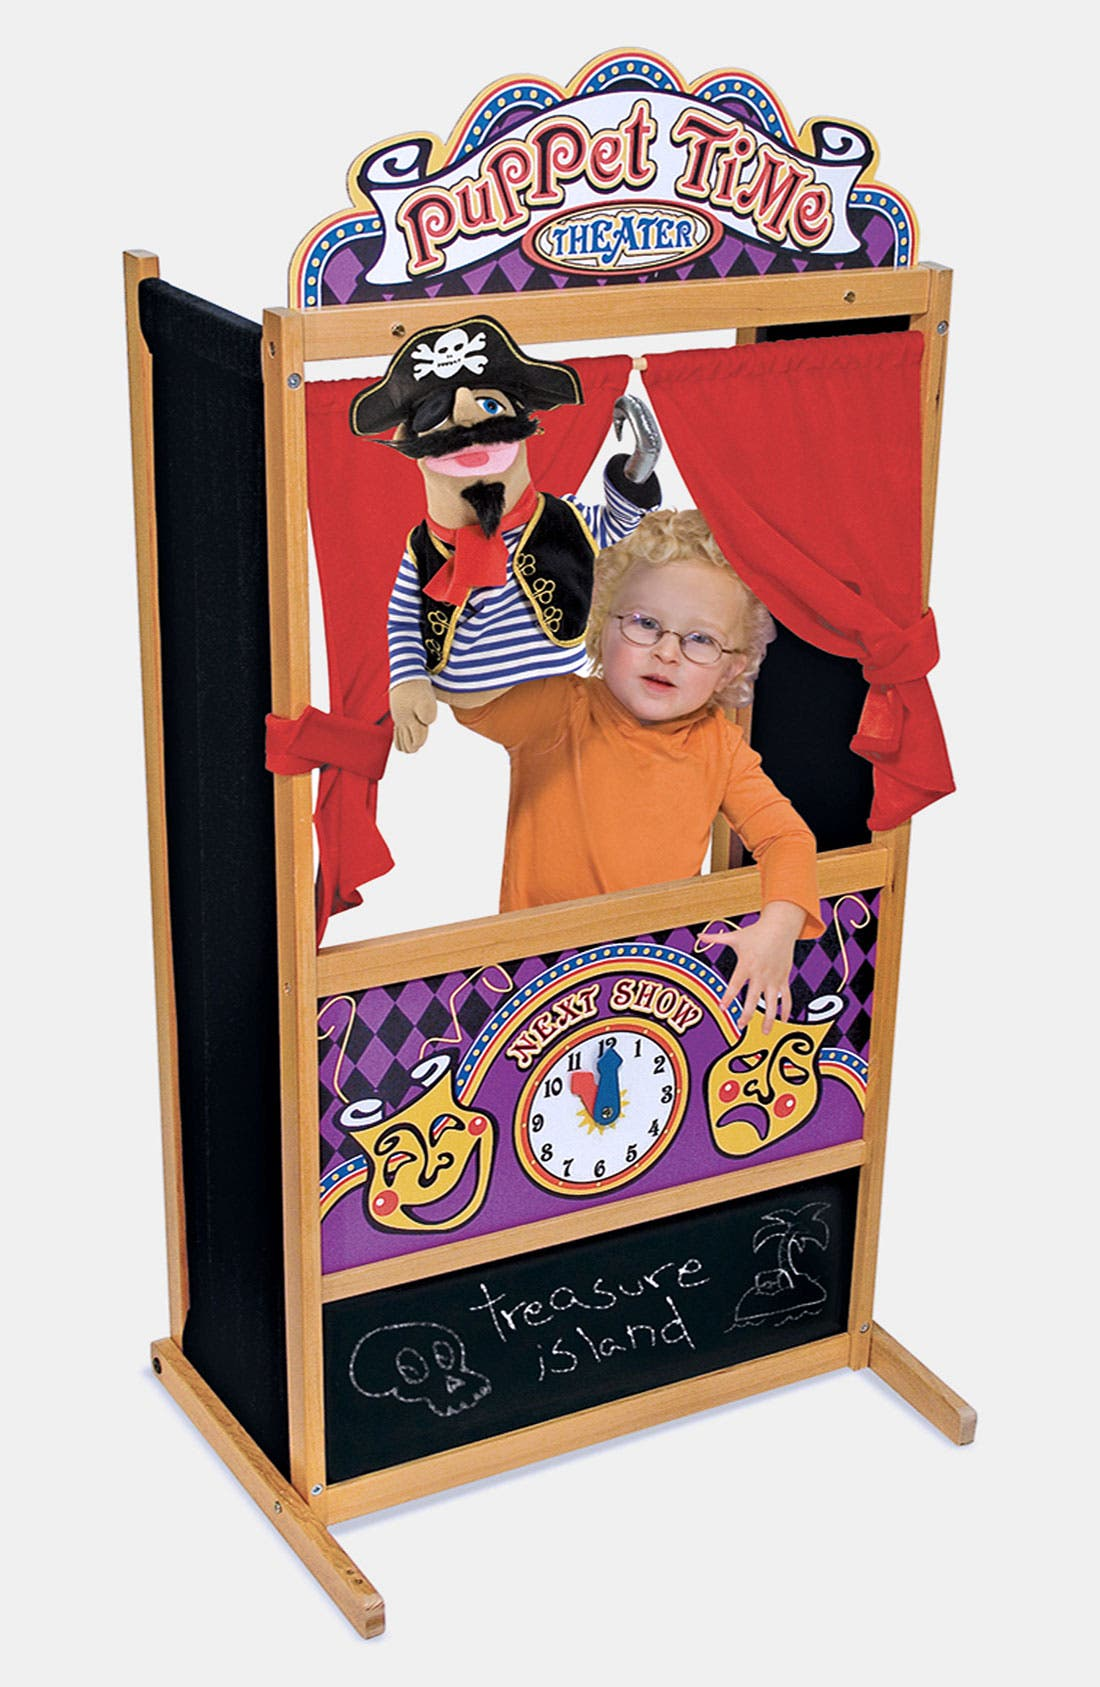 Alternate Image 1 Selected - Melissa & Doug 'Puppet Time' Theater (Online Only)